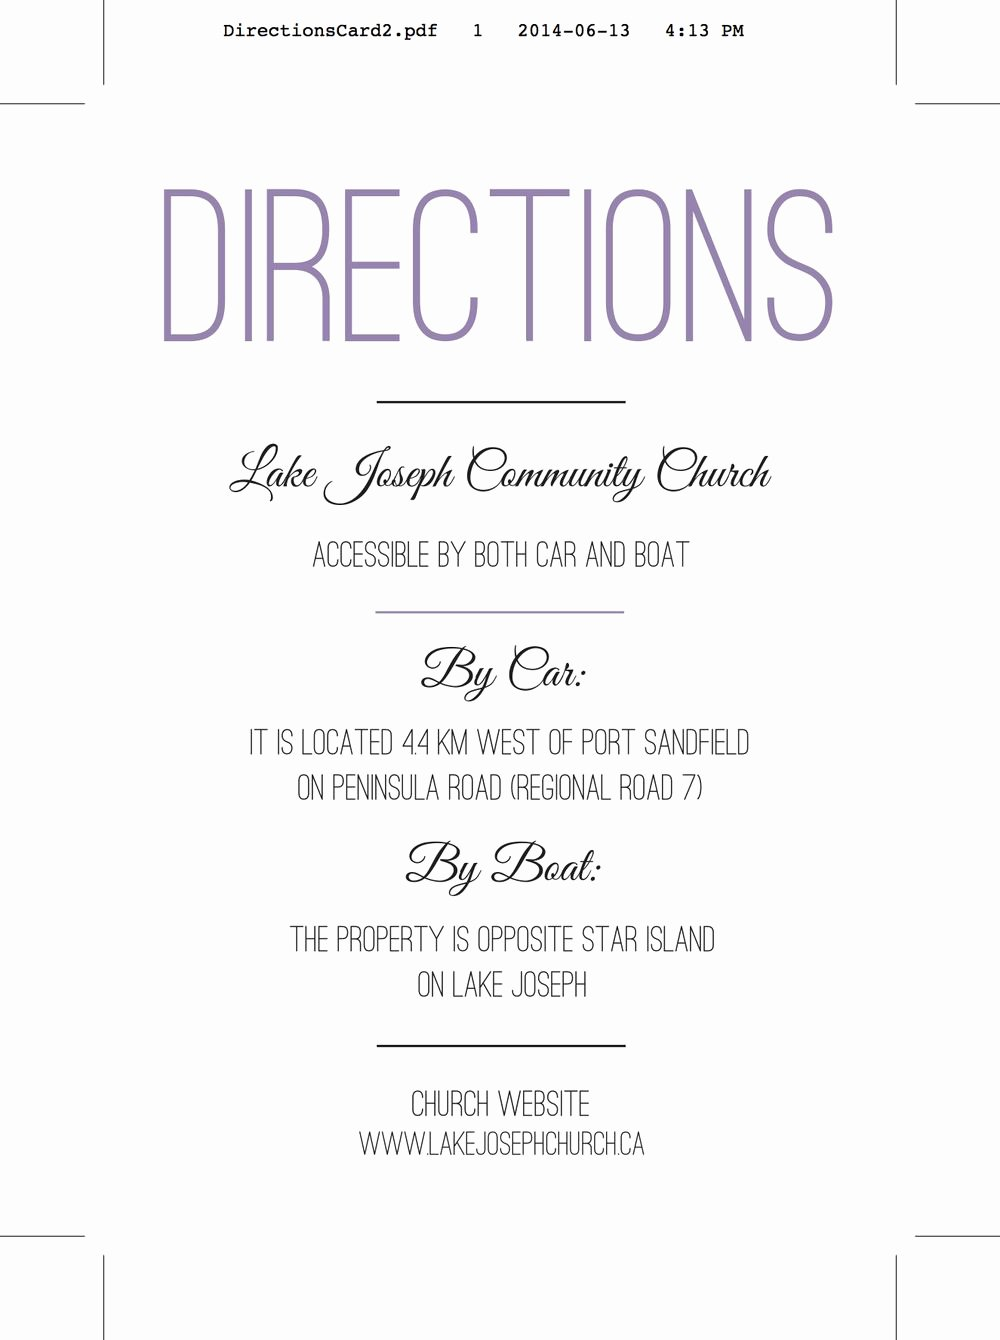 Wedding Direction Cards Template Fresh Wedding Invitation Directions Card Wedding Reception